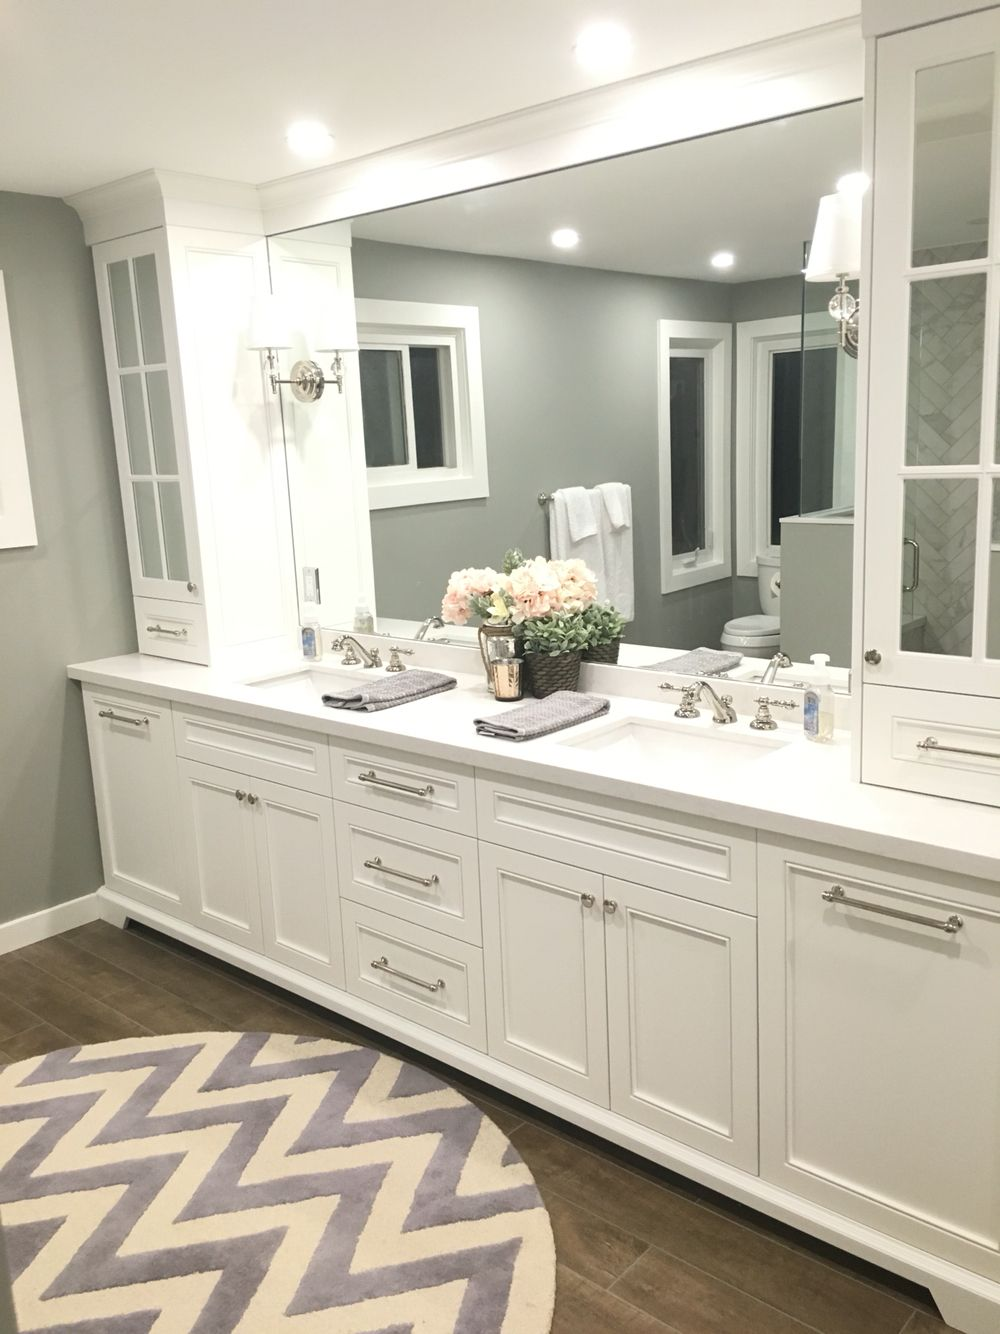 Inspiration Web Design Master bath with double vanity plenty of storage